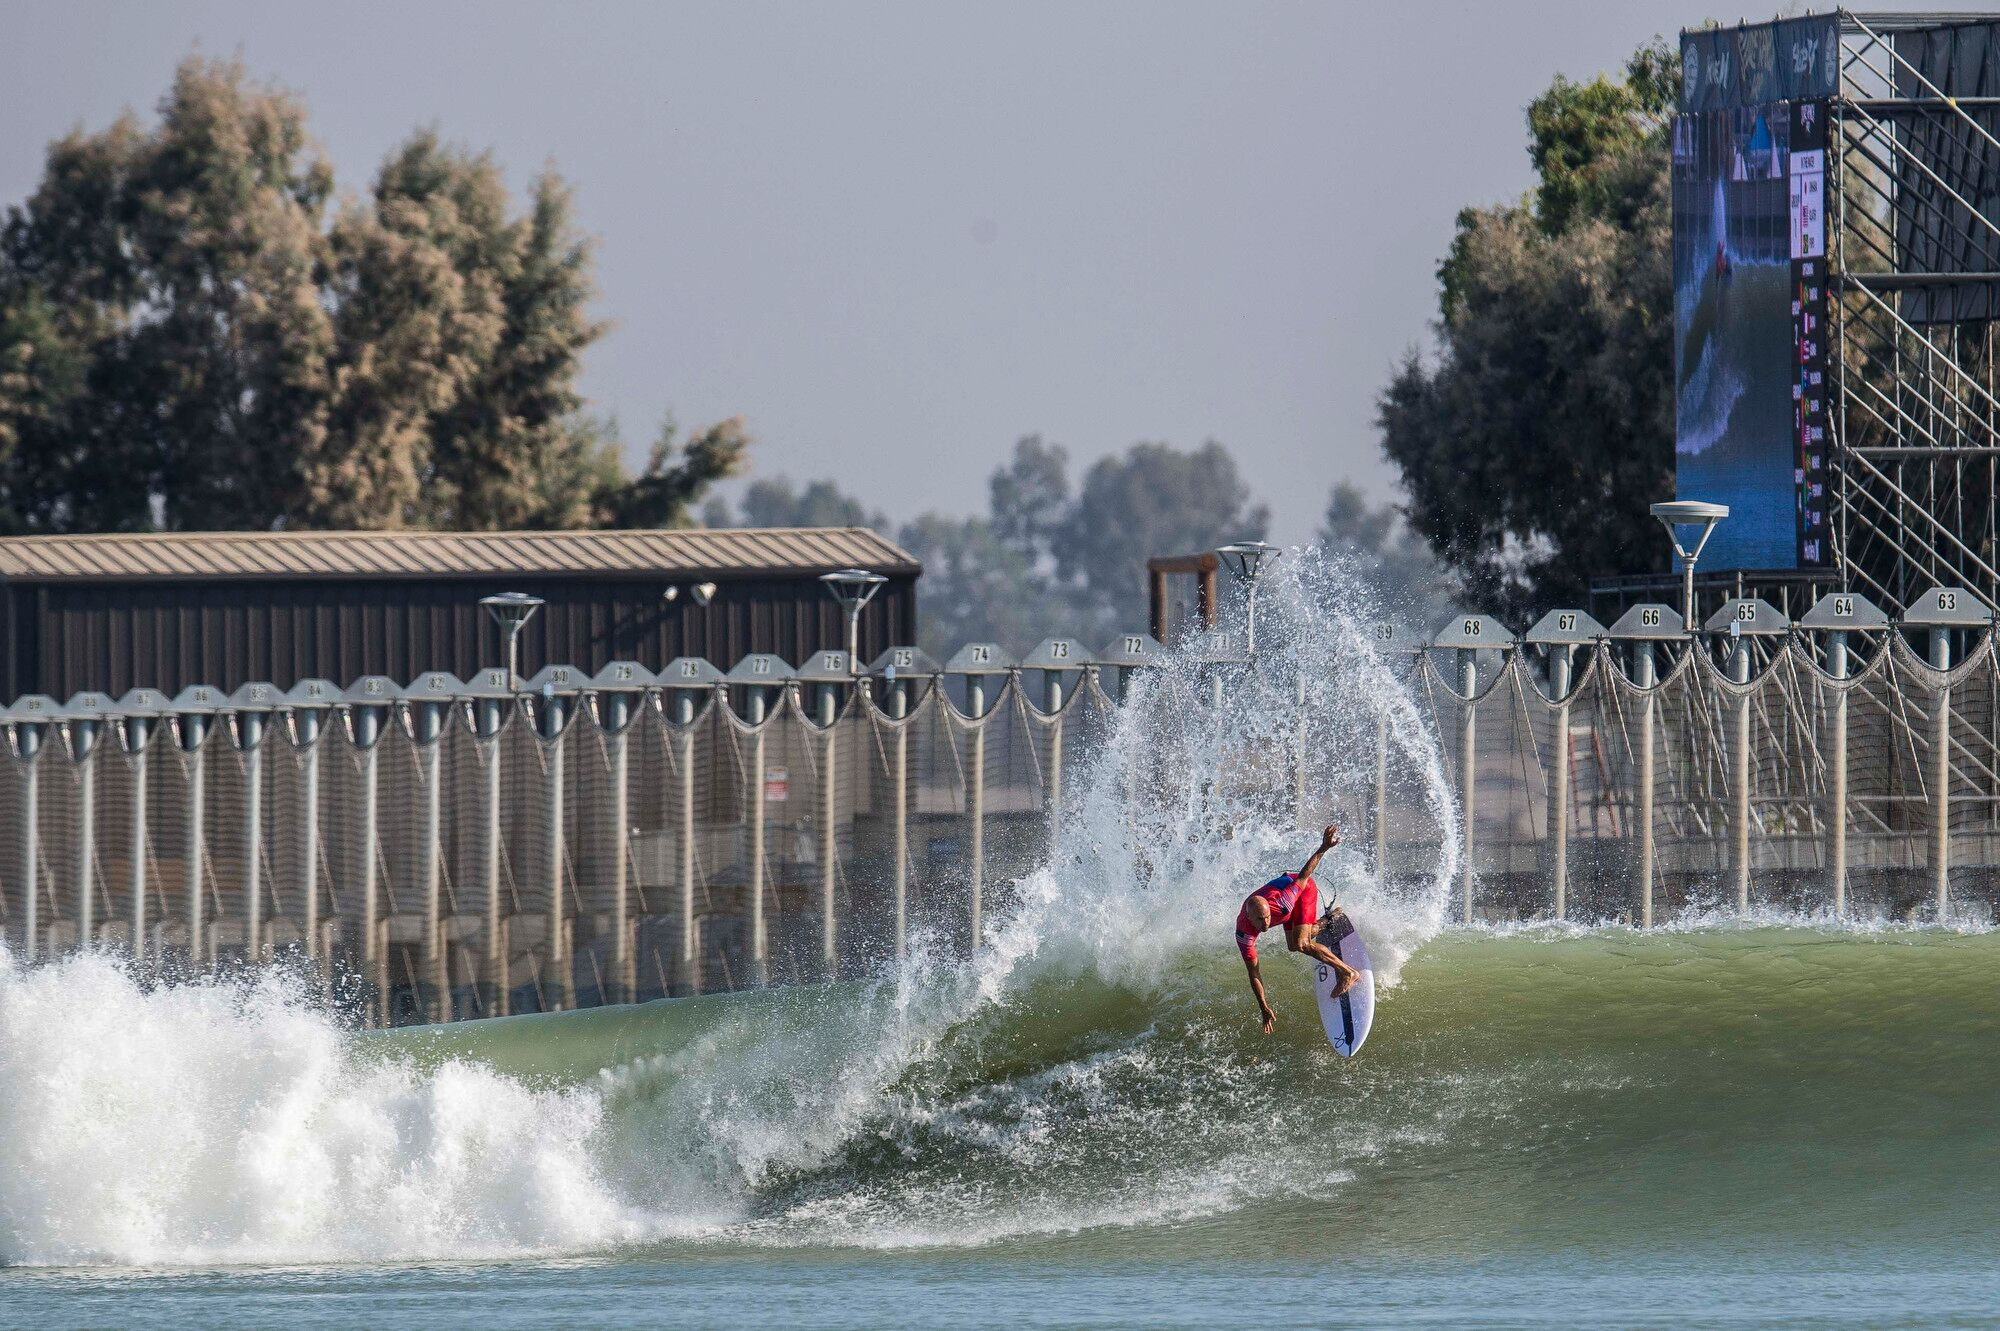 Slater to Build Largest Man-Made Wave in California Desert